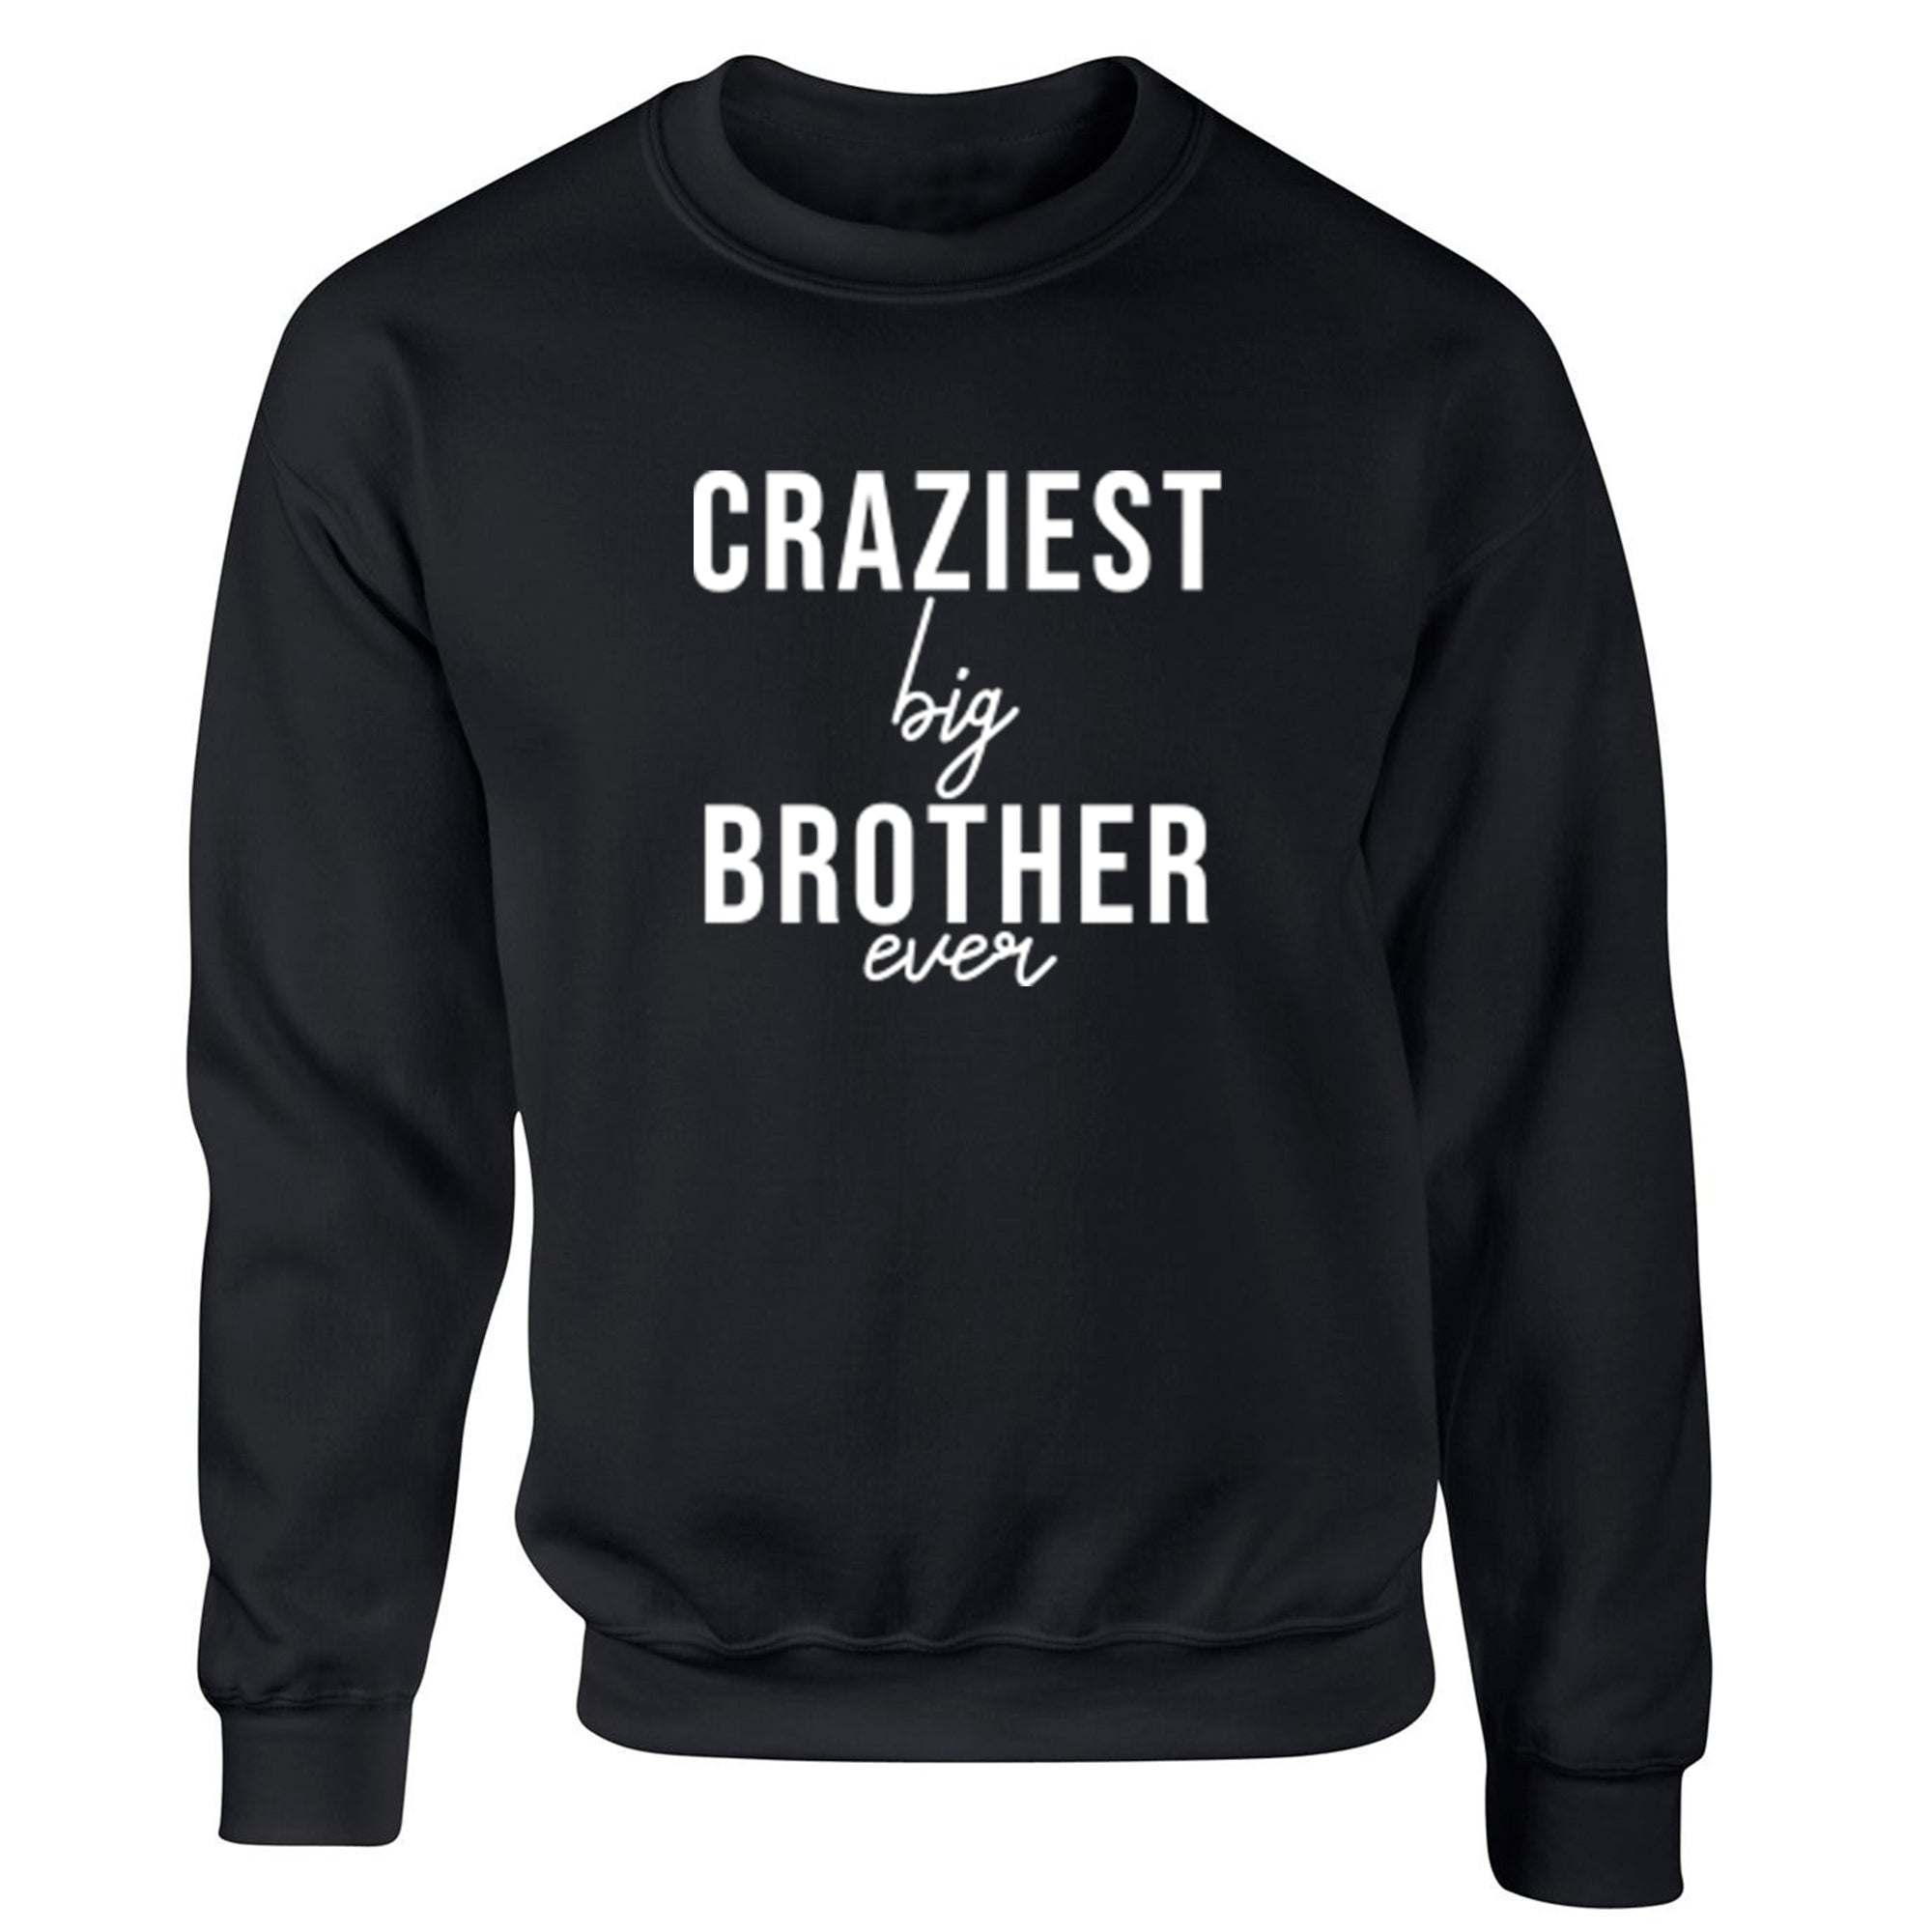 Craziest Big Brother Ever Childrens Ages 3/4-12/14 Unisex Jumper S0524 - Illustrated Identity Ltd.